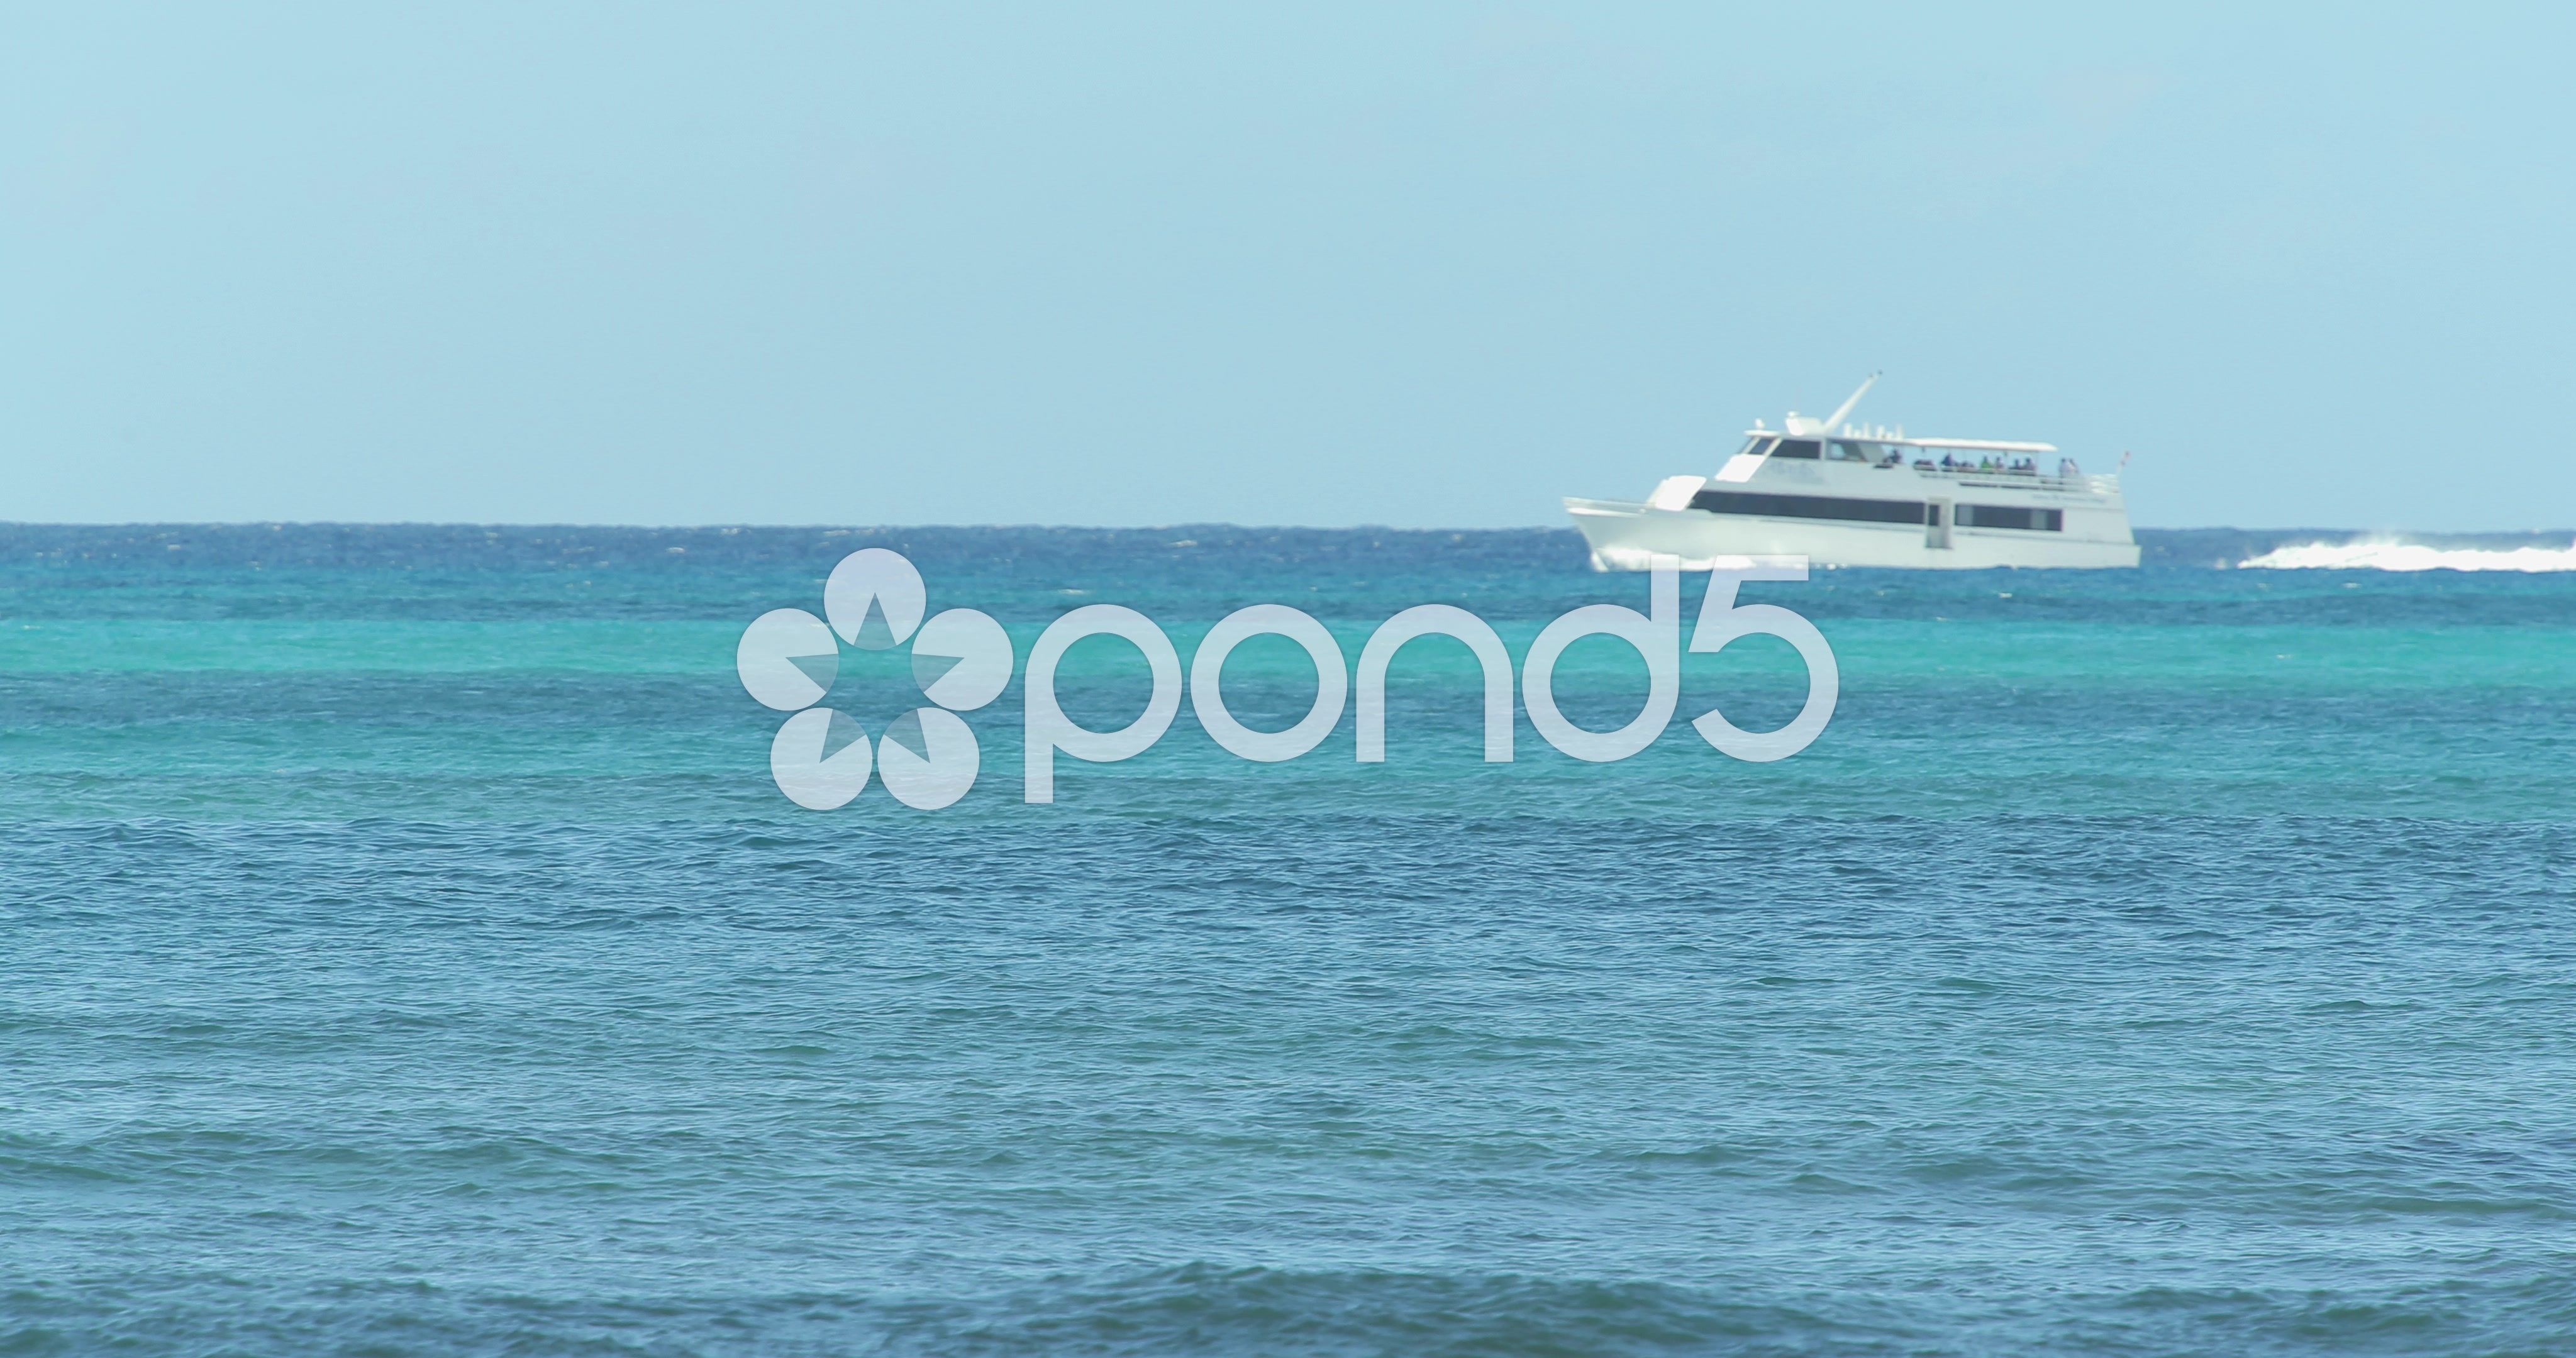 Yacht And Boat Sailing In Ocean Stock Footage Sailing Boat Yacht